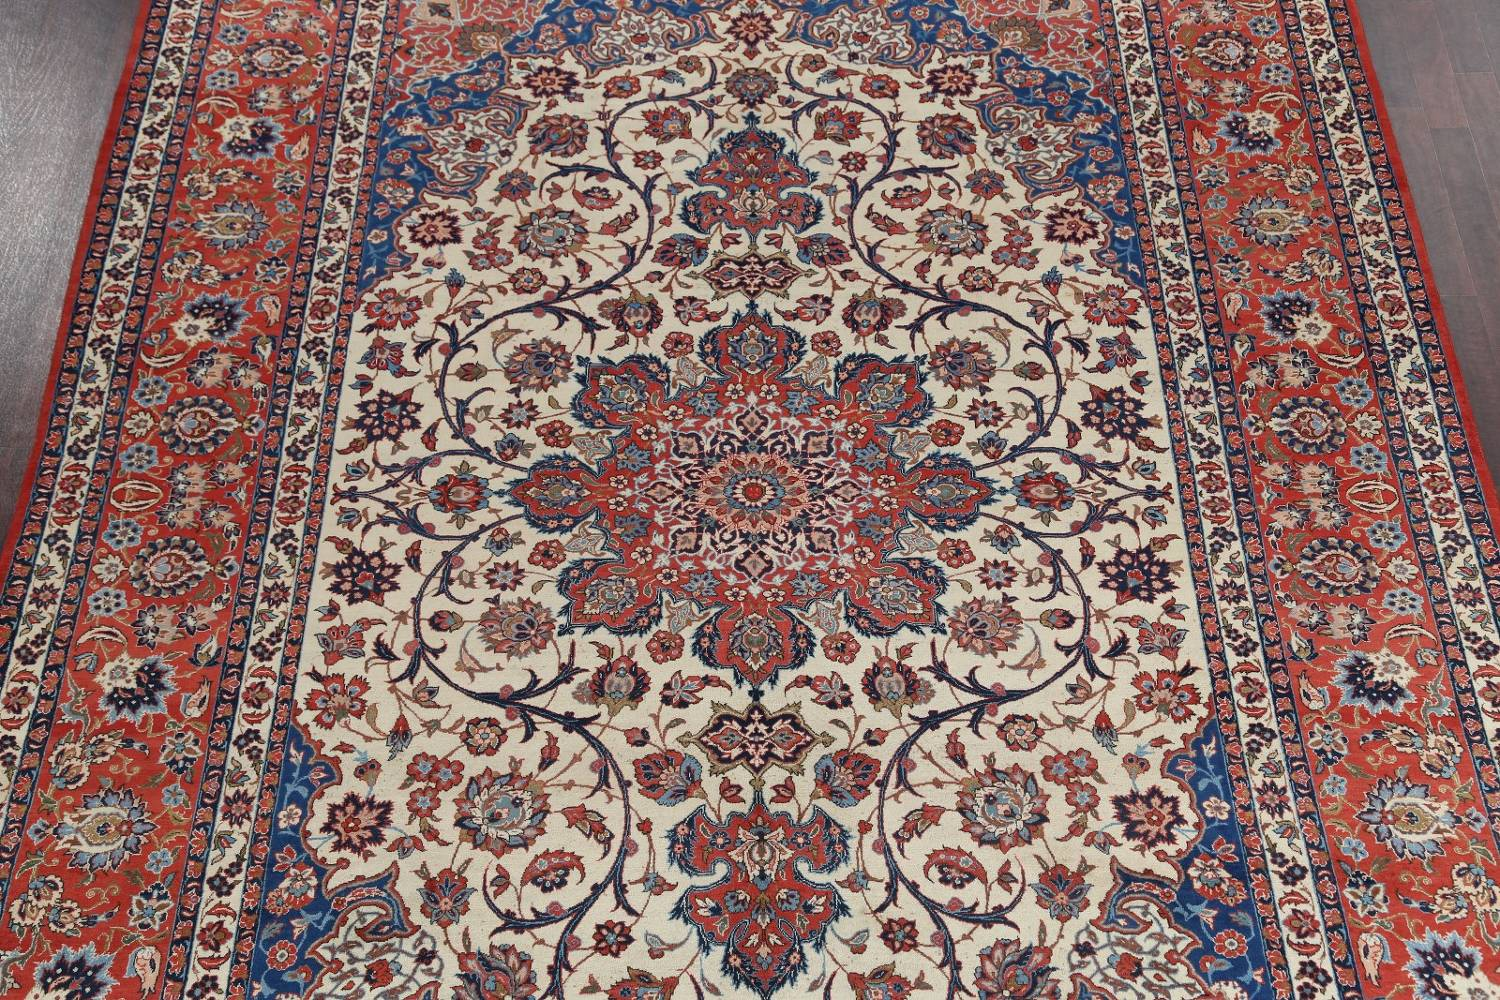 Floral 9x13 Isfahan Persian Area Rug image 4